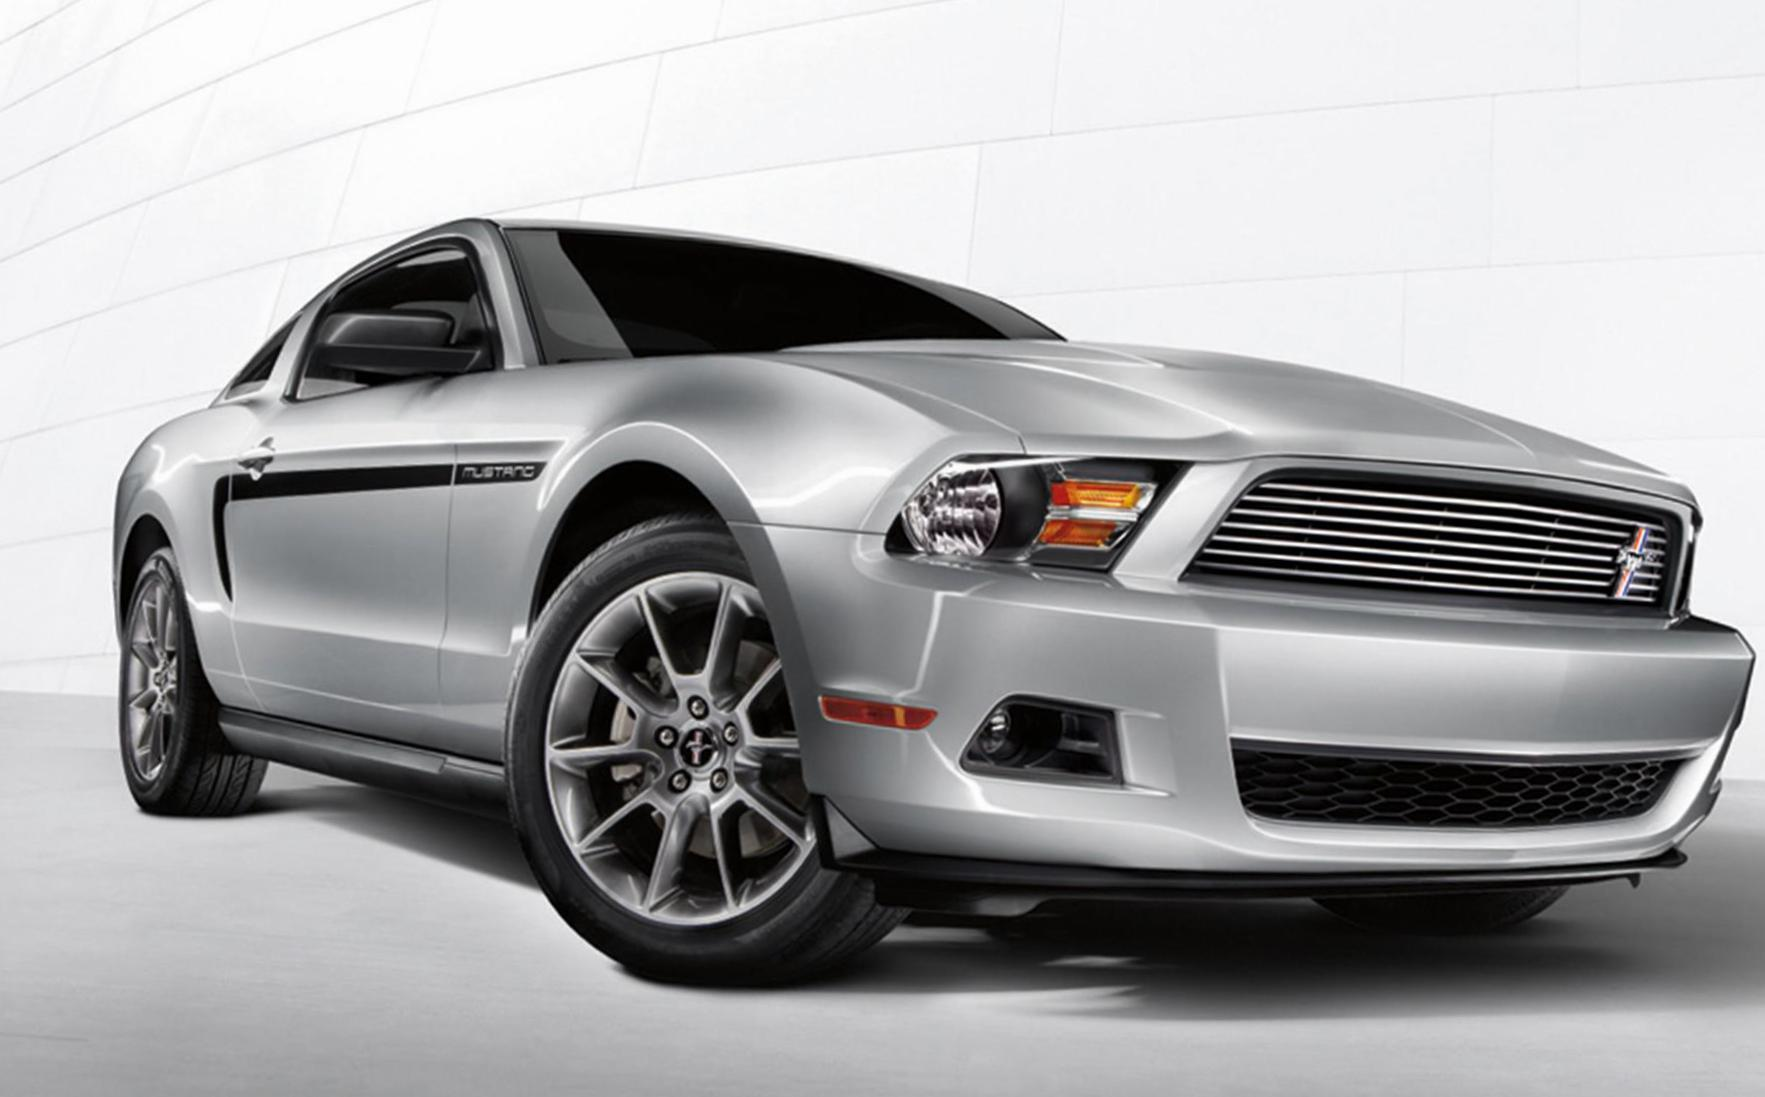 Ford Mustang auto 2014